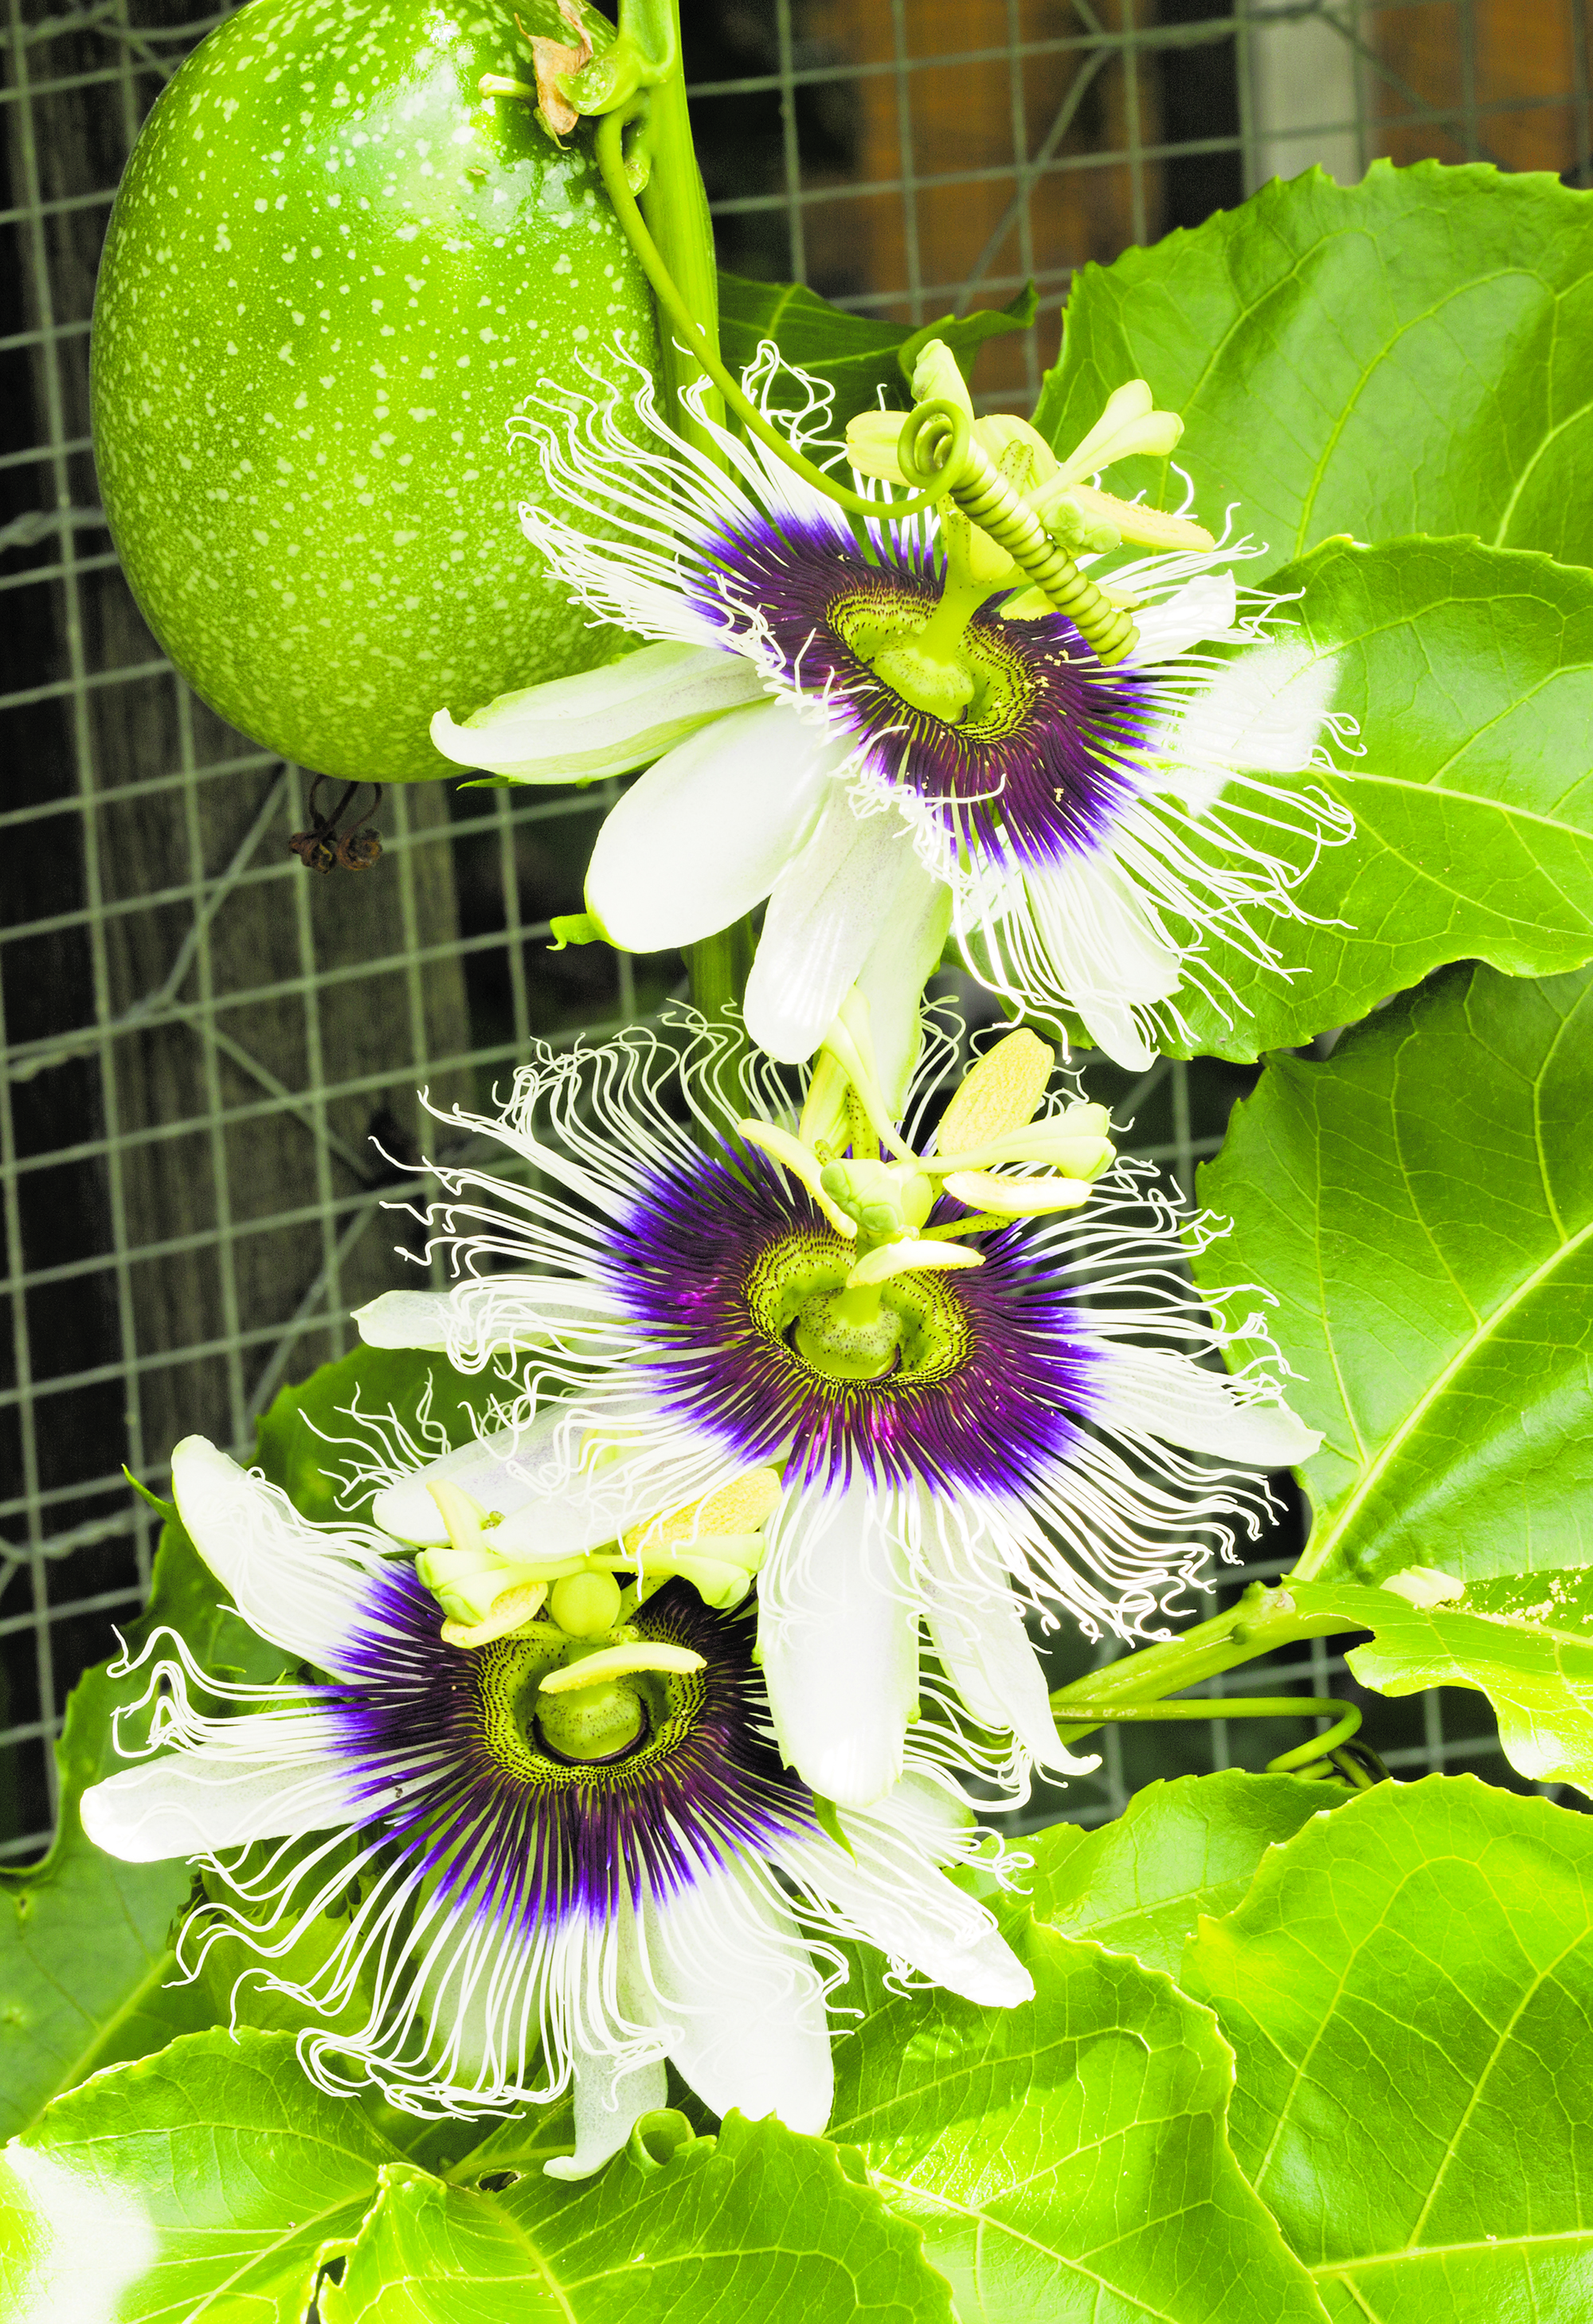 Garden Variety Passionflower Adds Tropical Feel News Sports